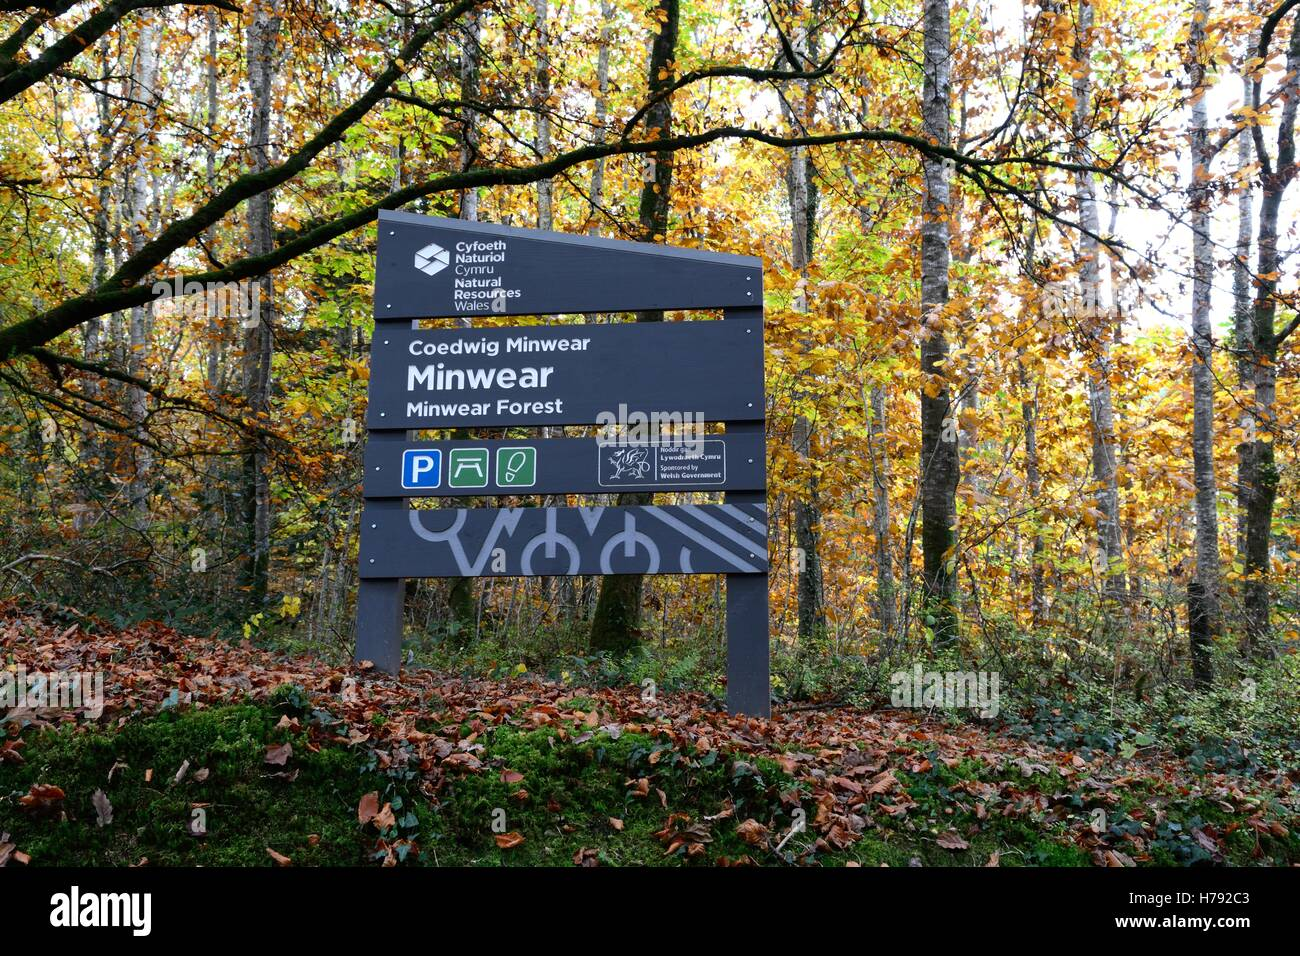 Les ressources naturelles du pays de Galles s Minwear Canaston Forêt Pembrokeshire Wales Cymru Woods UK GO Photo Stock